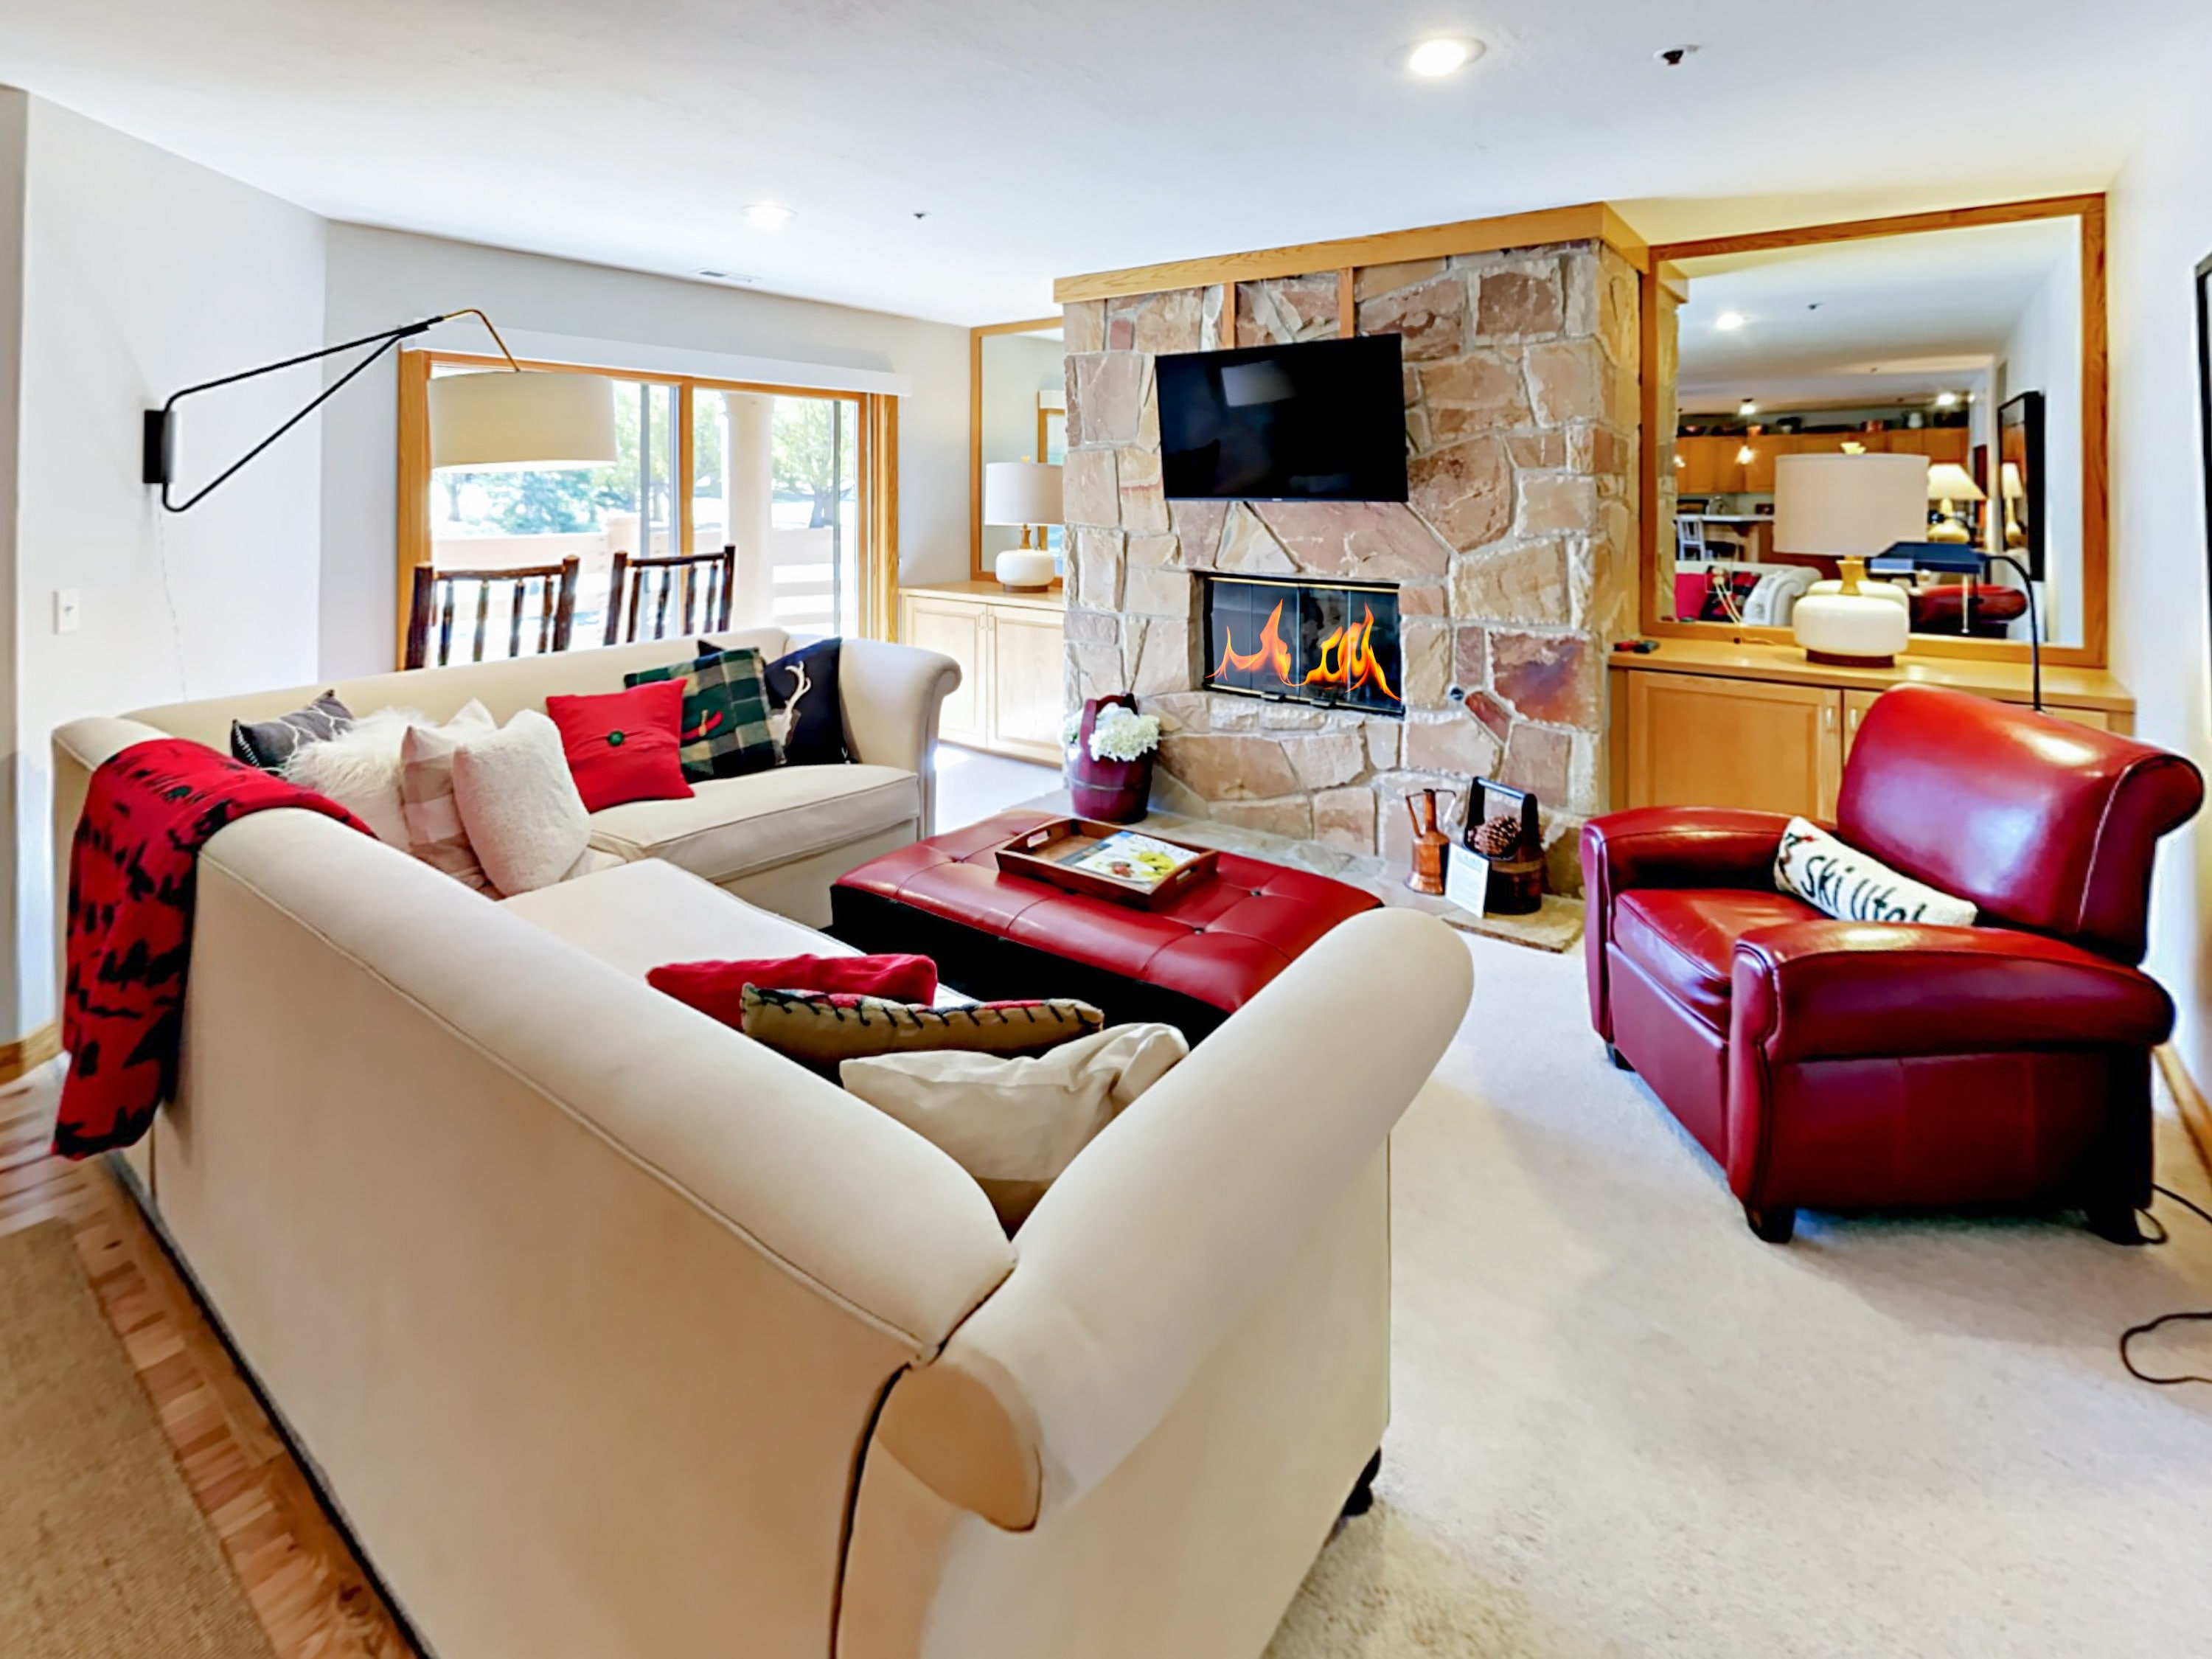 Welcome to your Park City condo! Professionally managed by TurnKey Vacation Rentals.